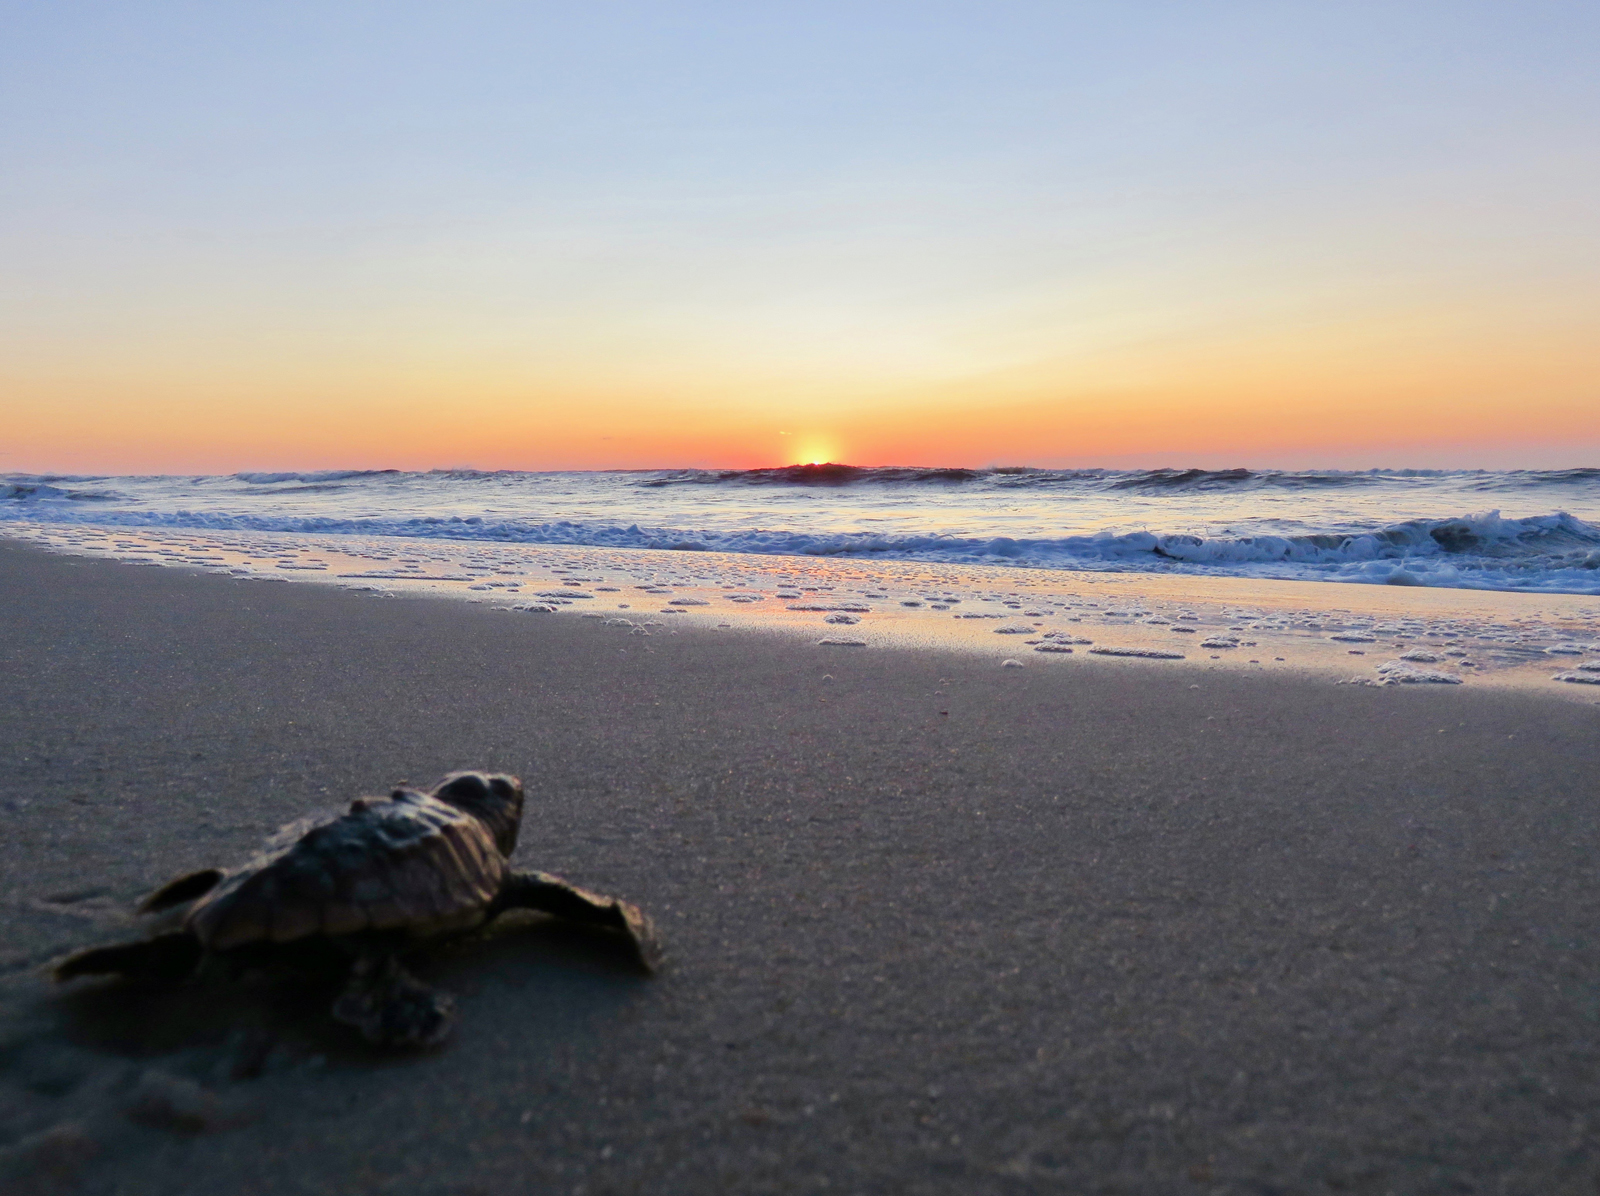 First Confirmed Sea Turtle Nest Hatch On Ateague Island National Seas